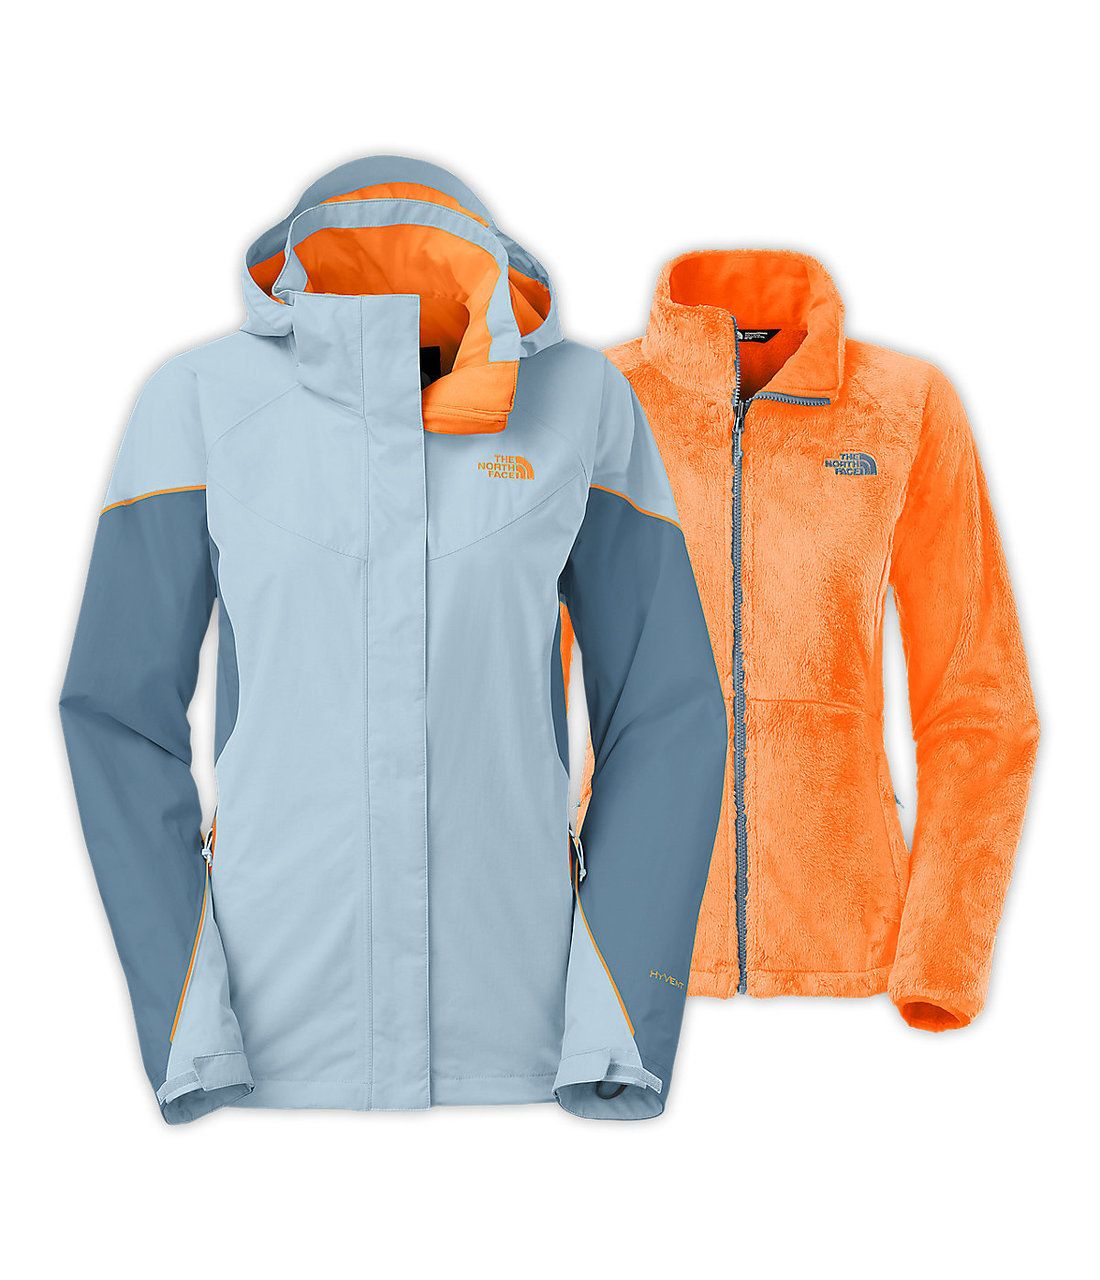 North face women s boundary triclimate jacket in tofino blue cool blue impact orange